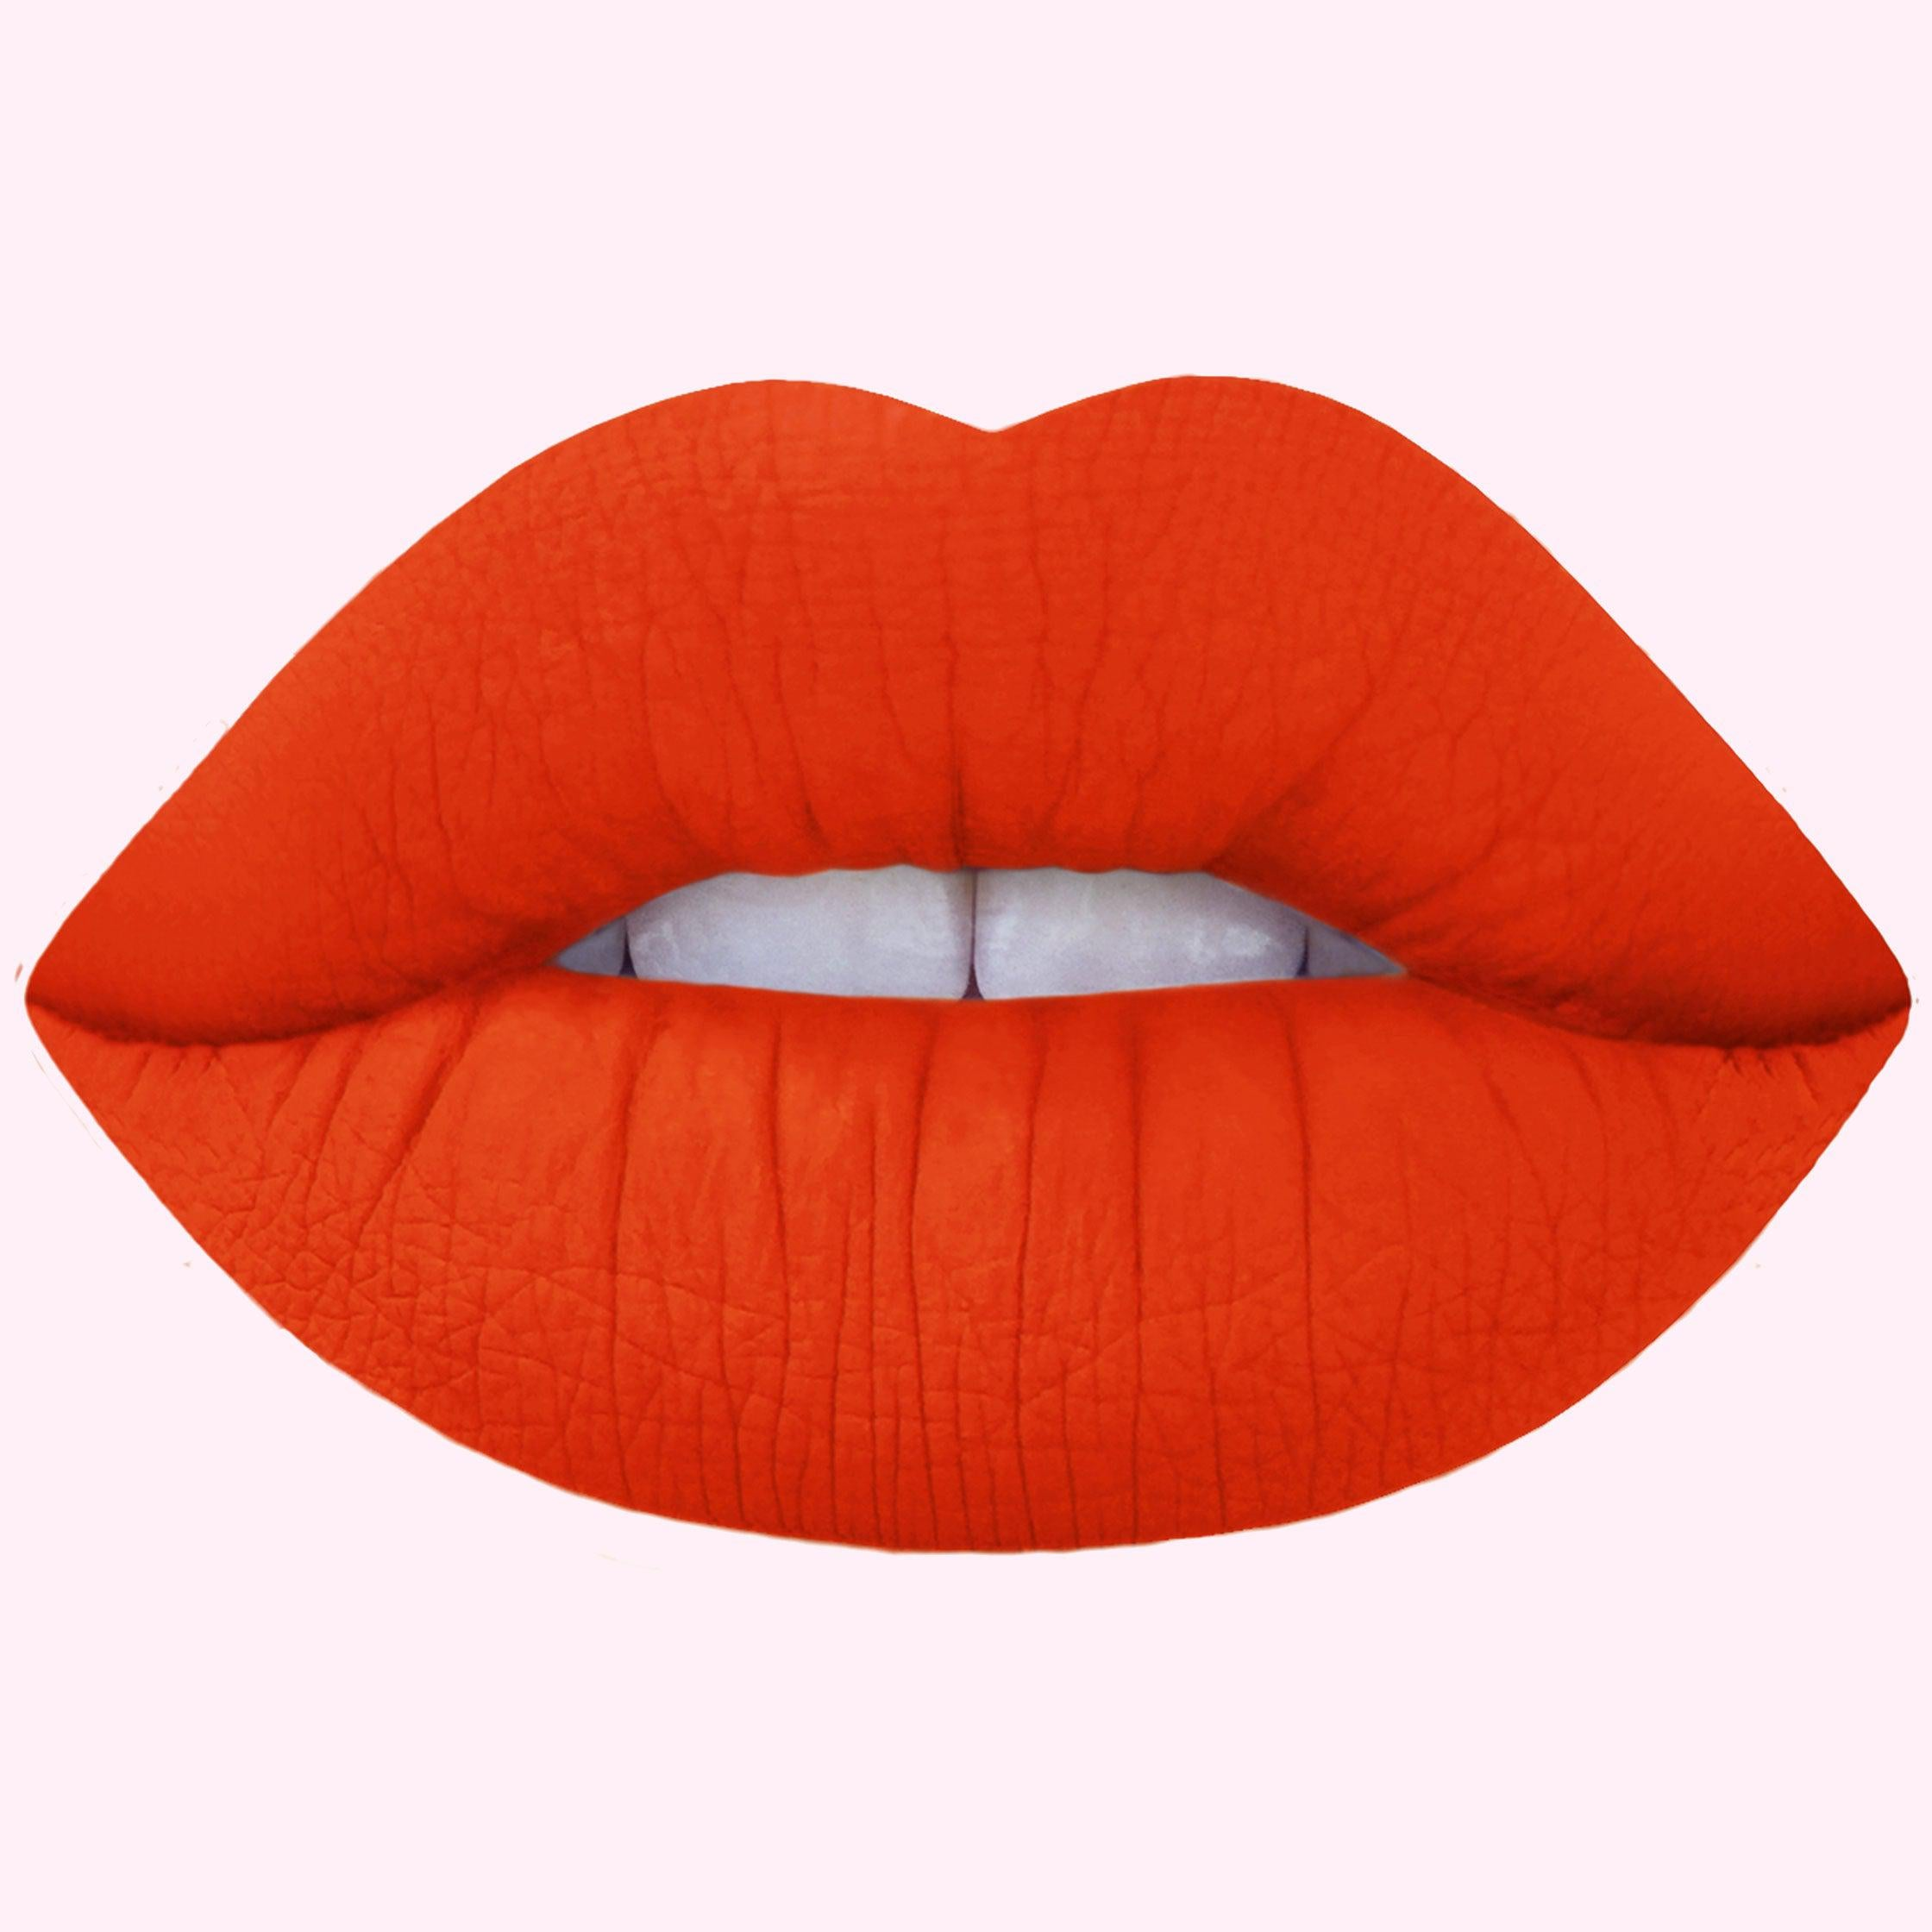 Lime Crime : Psycho Matte Lipstick in Blazing Orange